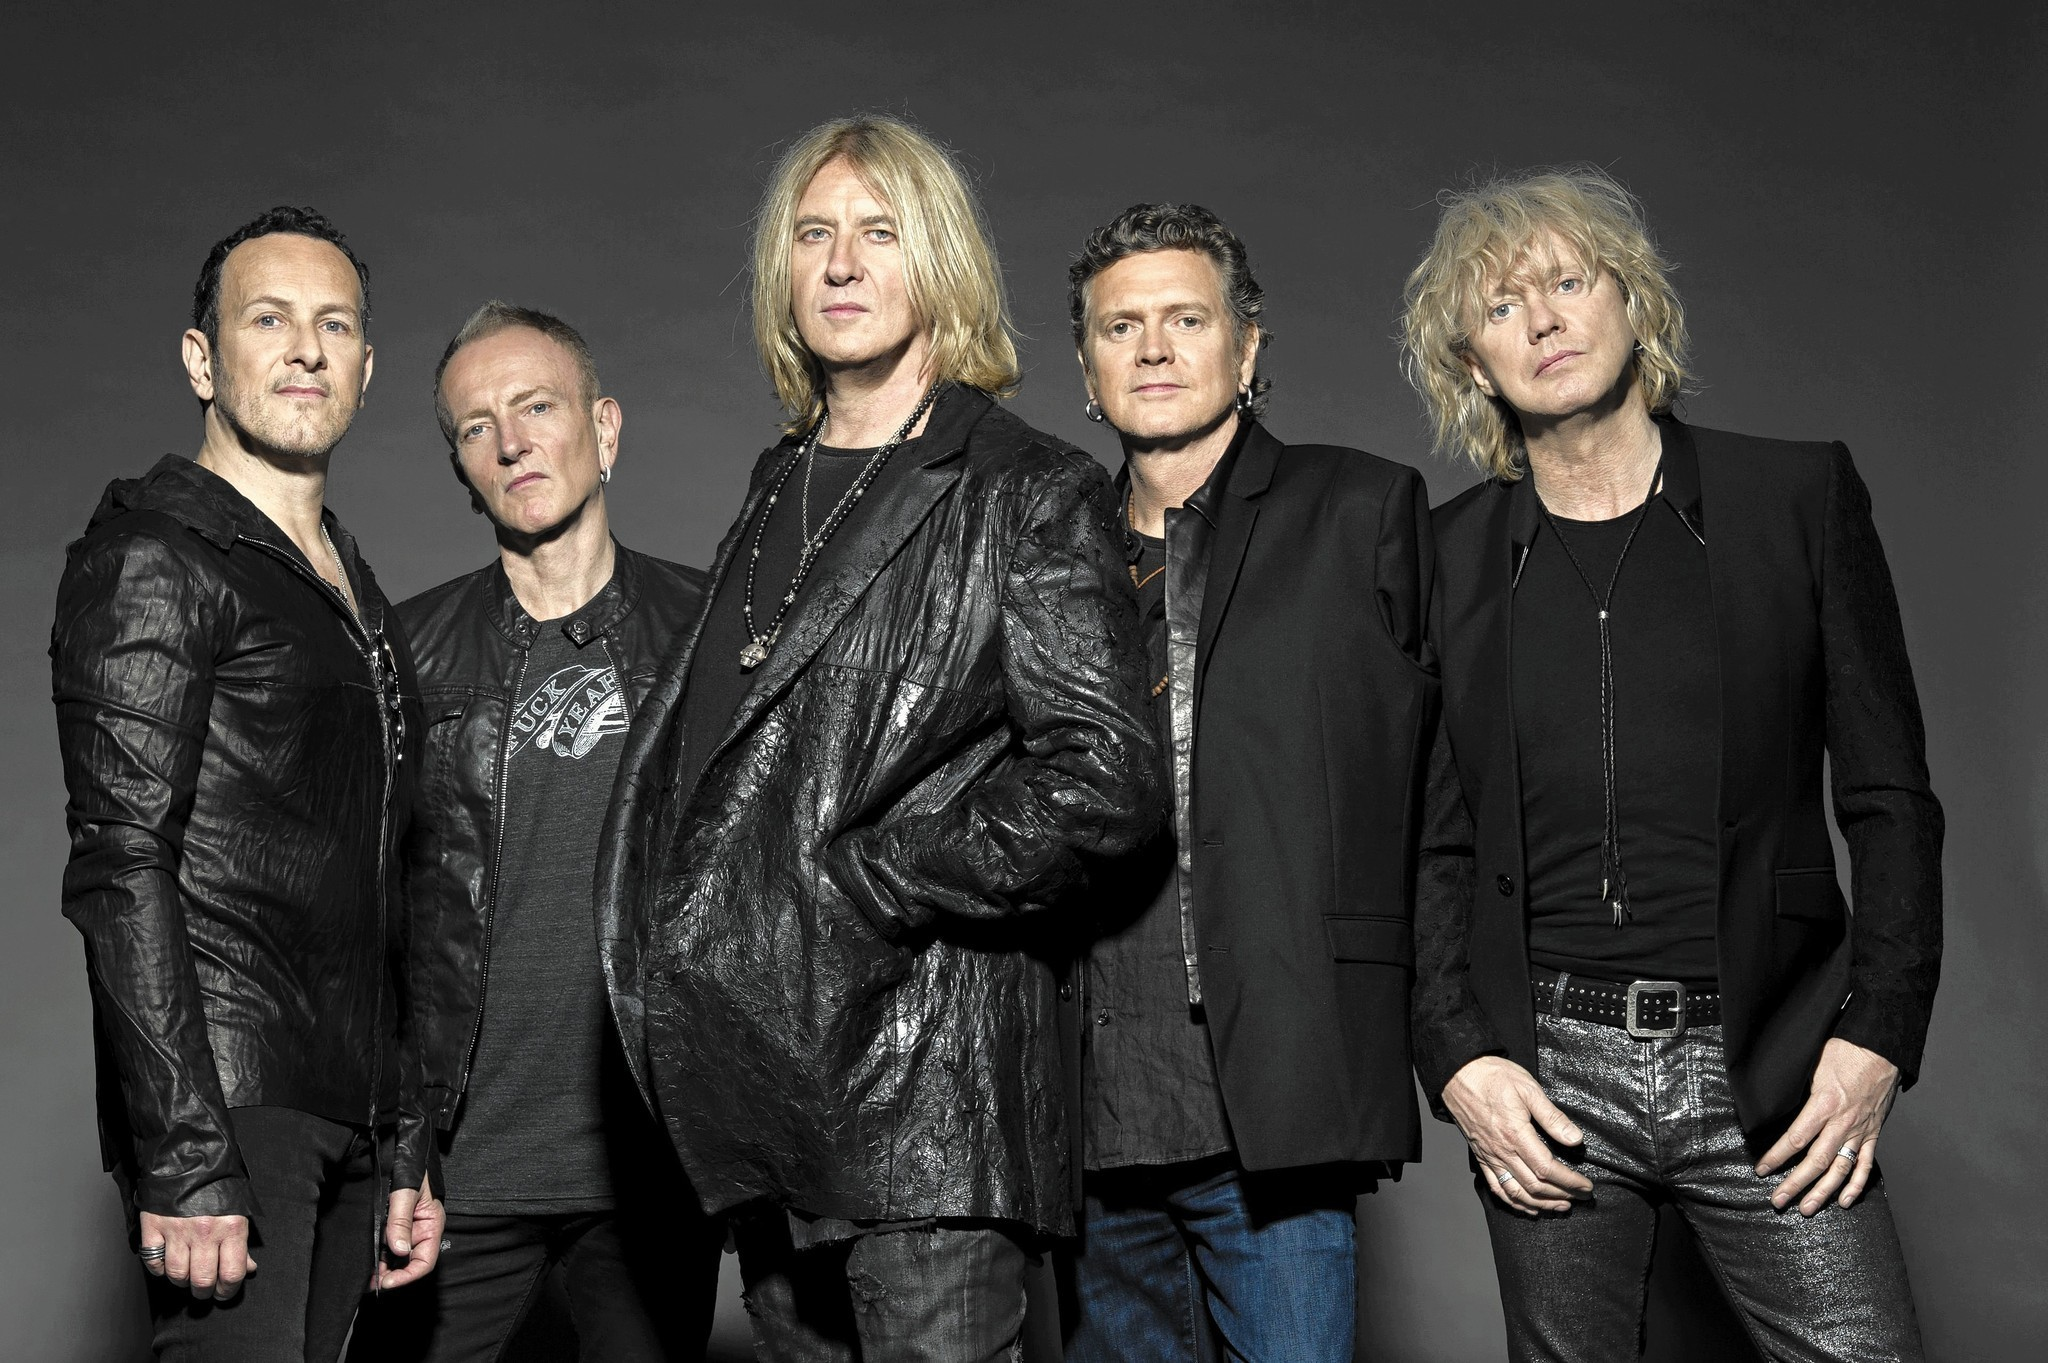 2048x1363 Def Leppard brings 'leaner and meaner' show to Tinley - Daily Southtown